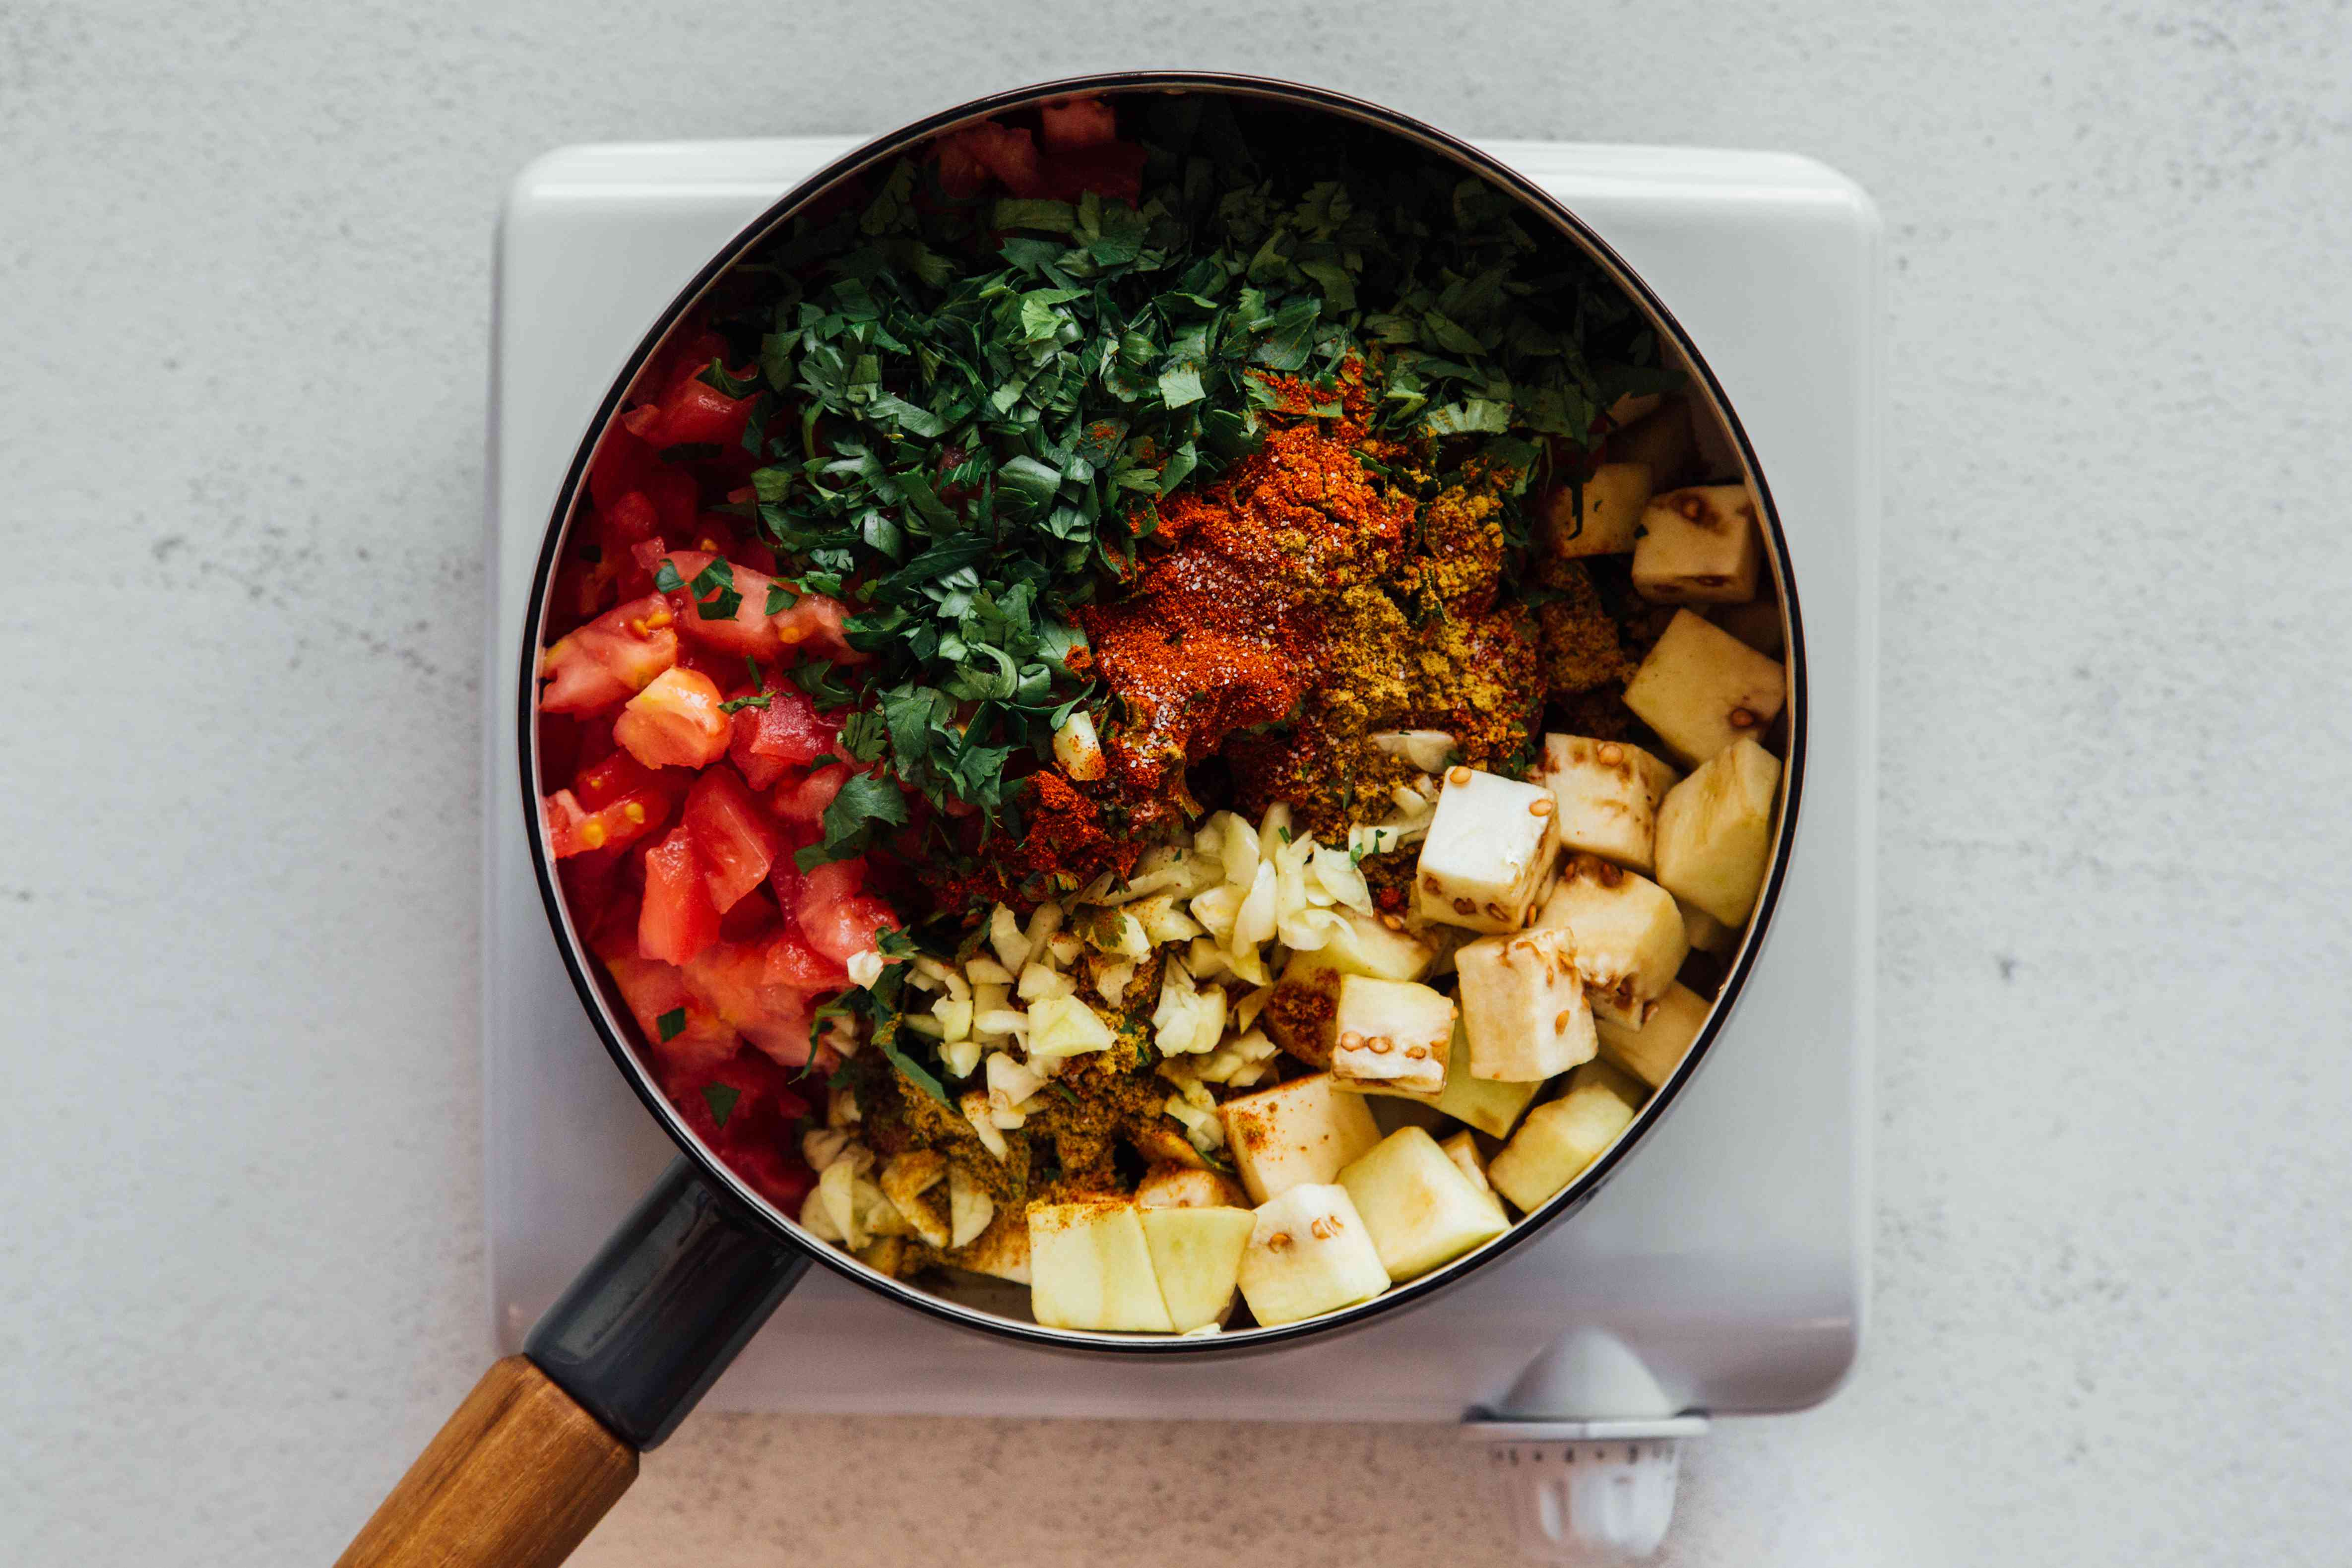 Eggplant, tomatoes, garlic, cilantro, parsley, paprika, cumin, salt, oil, water, and cayenne in a pan